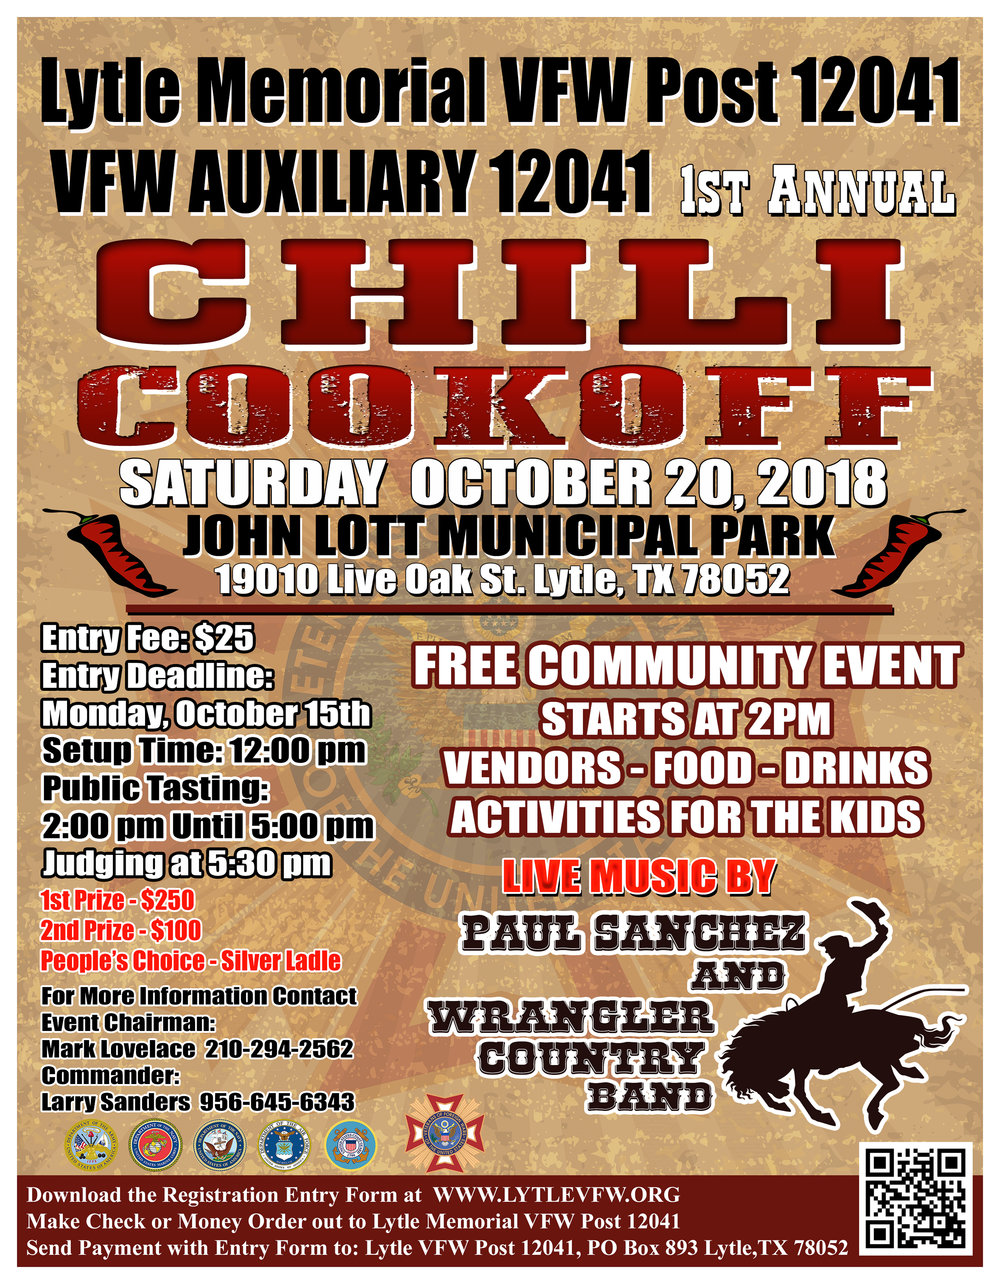 VFW 12041 CHILI COOKOFF 2018.jpg